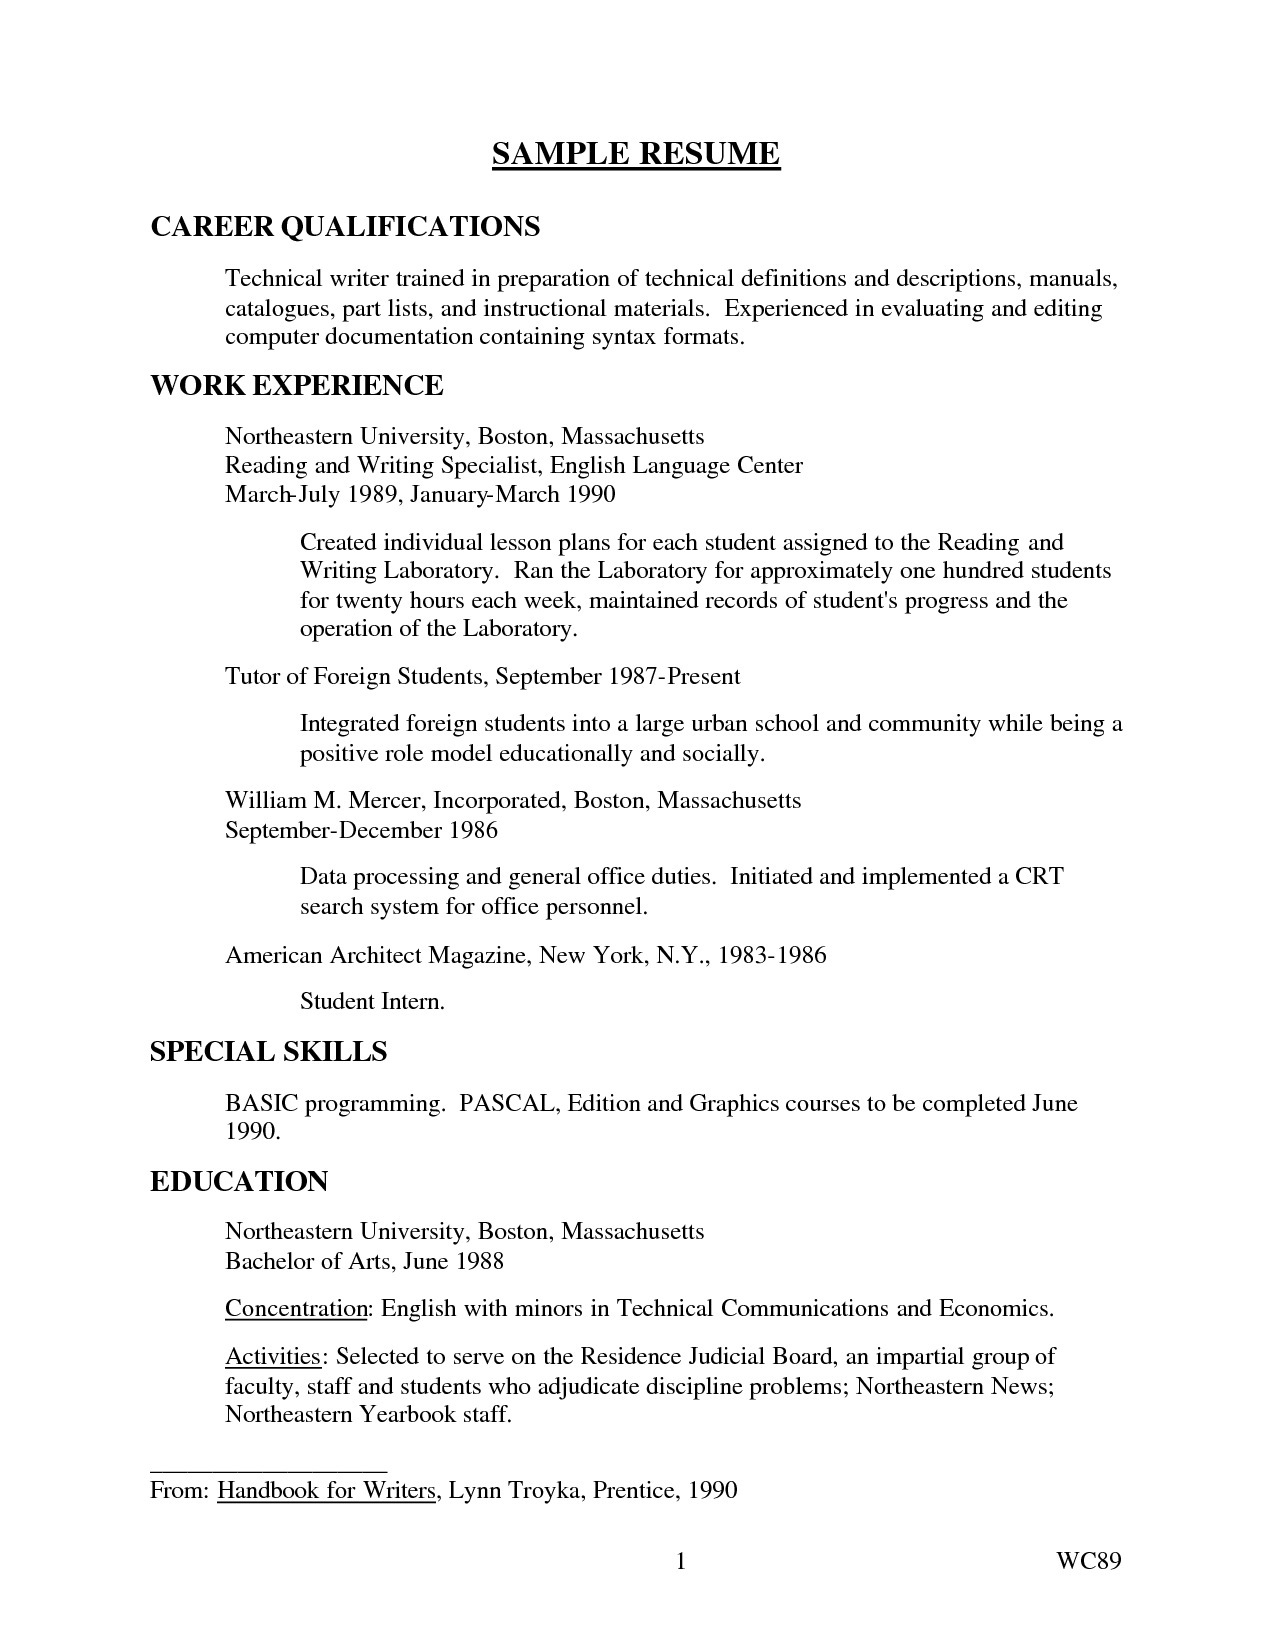 resume cover letter examples Excellent Job Application Cover Letter ...